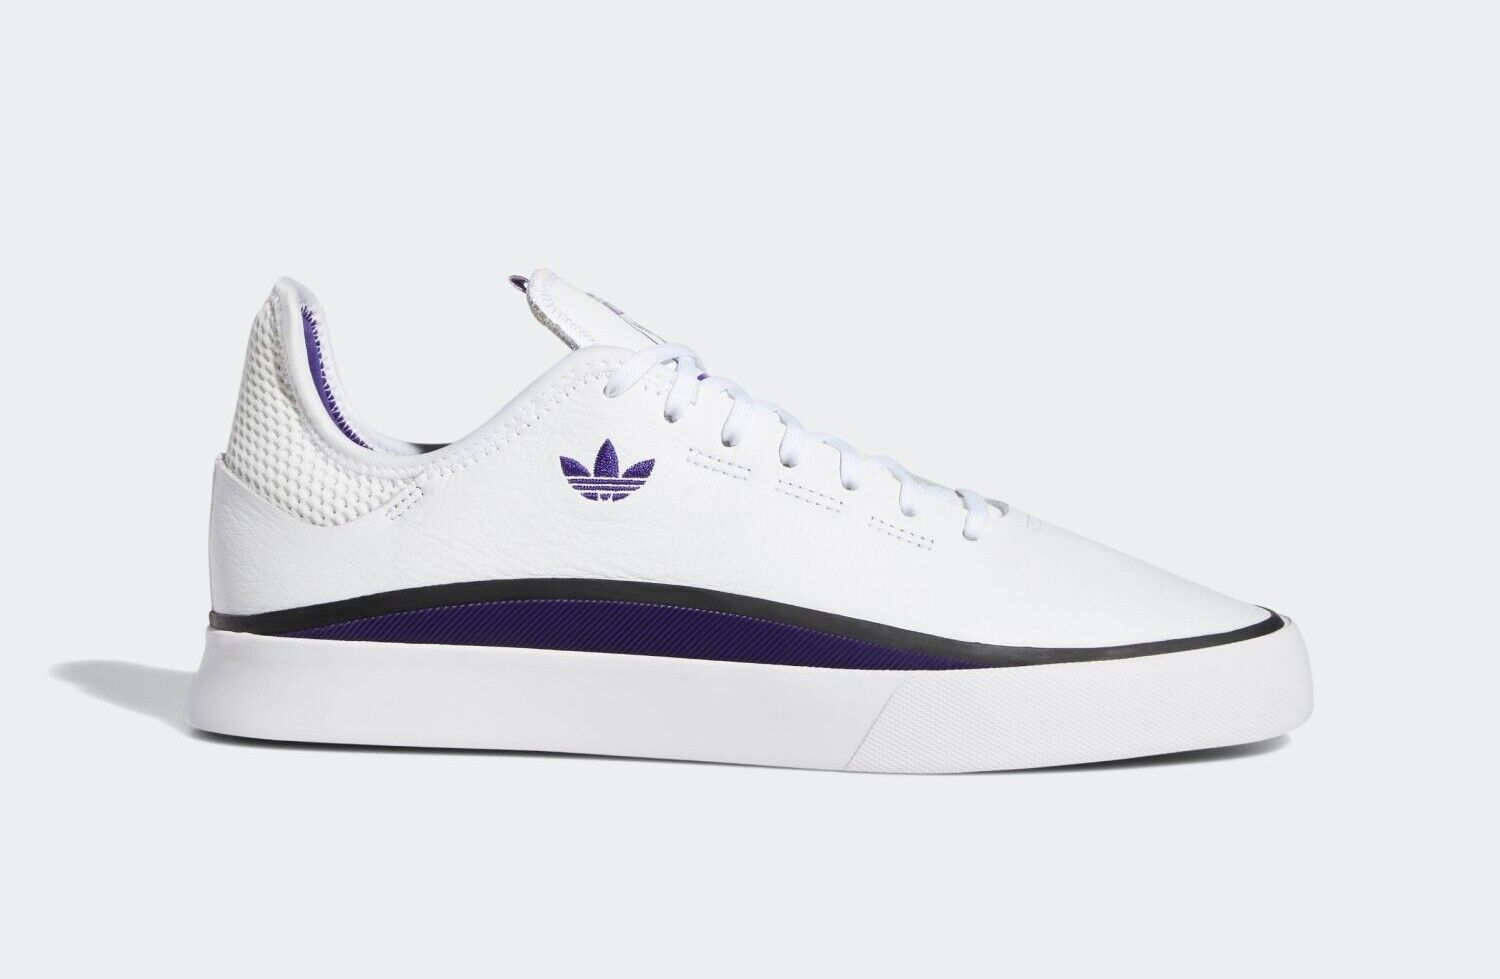 Adidas Sabalo x Hardies Shoes (F36437) Sports Skate Street